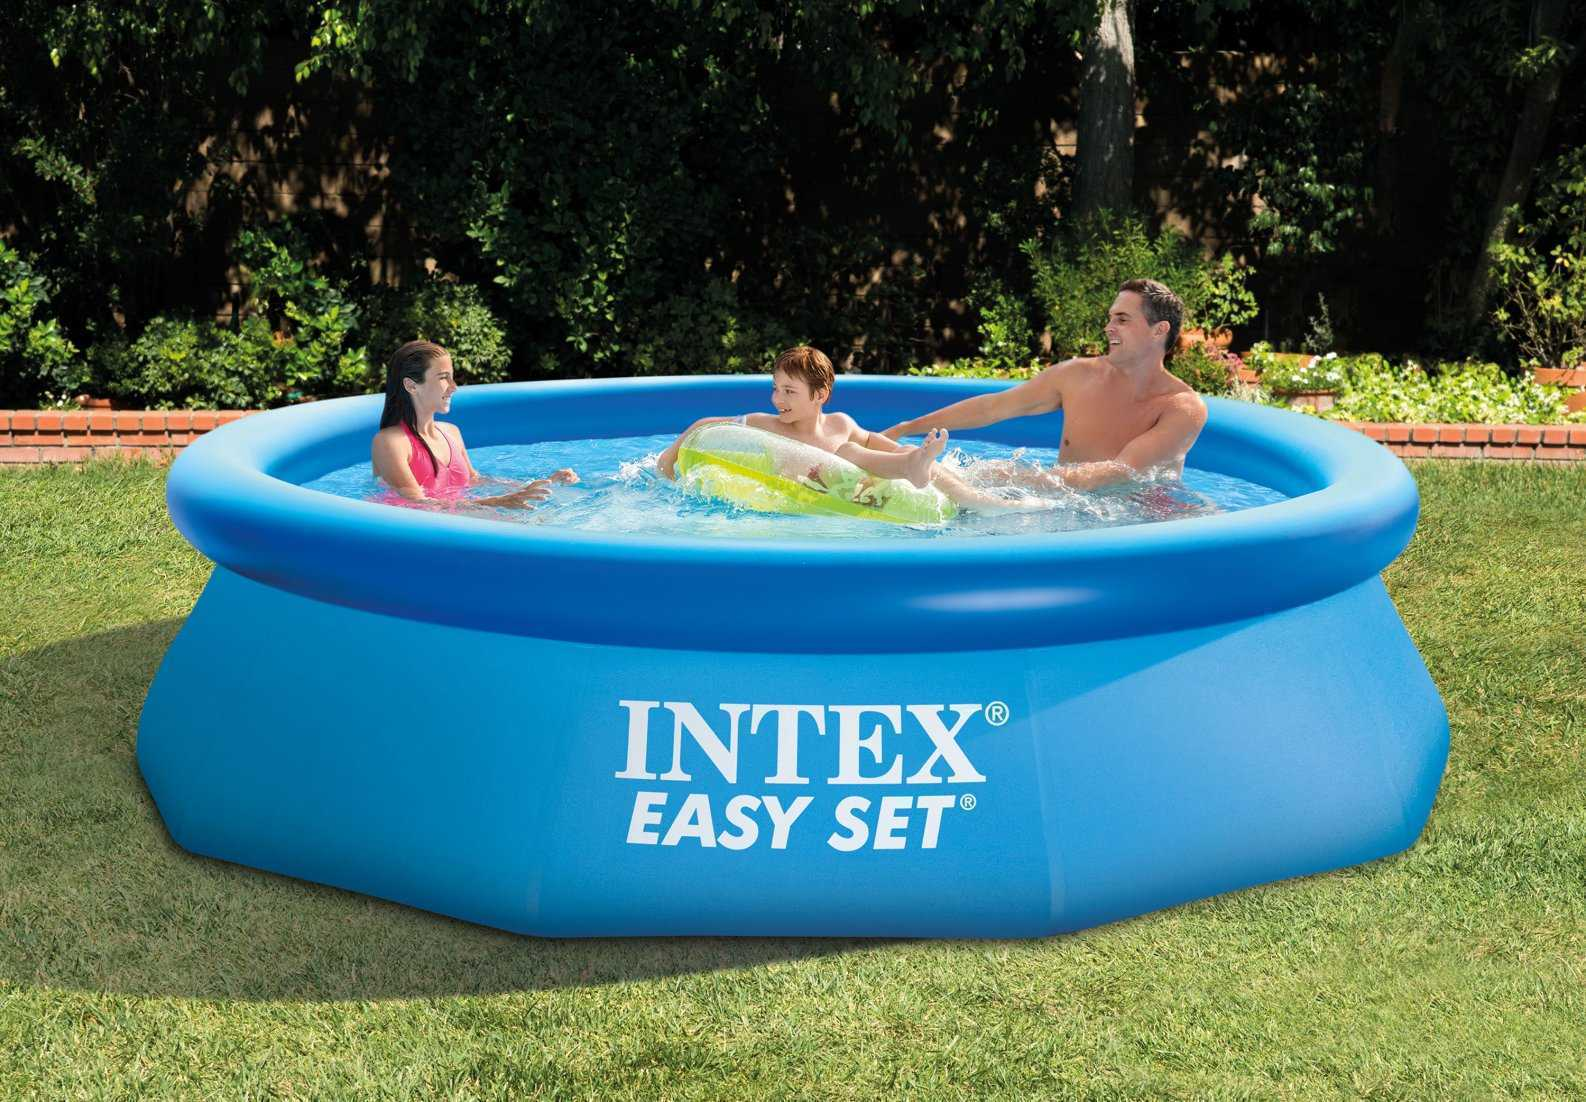 Piscine intex easy set 3 96 x 0 84m c piscine for Piscine easy set